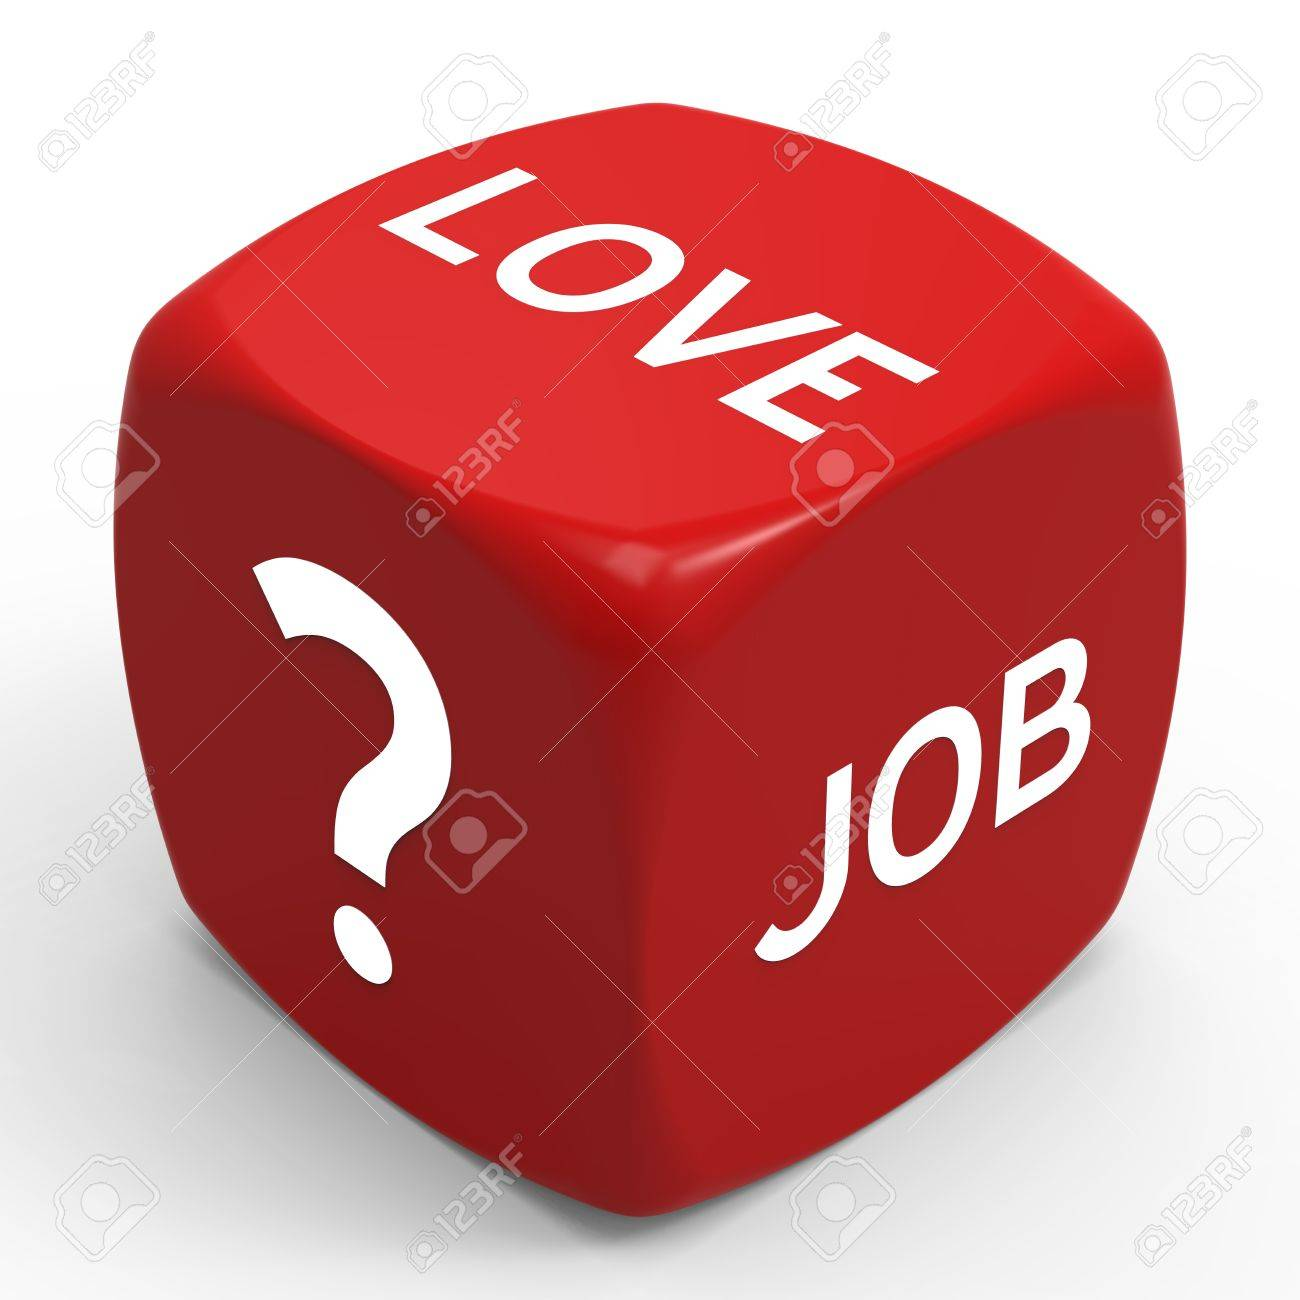 Love or Career - How to Make the Right Choice Stock Photo - 19093376